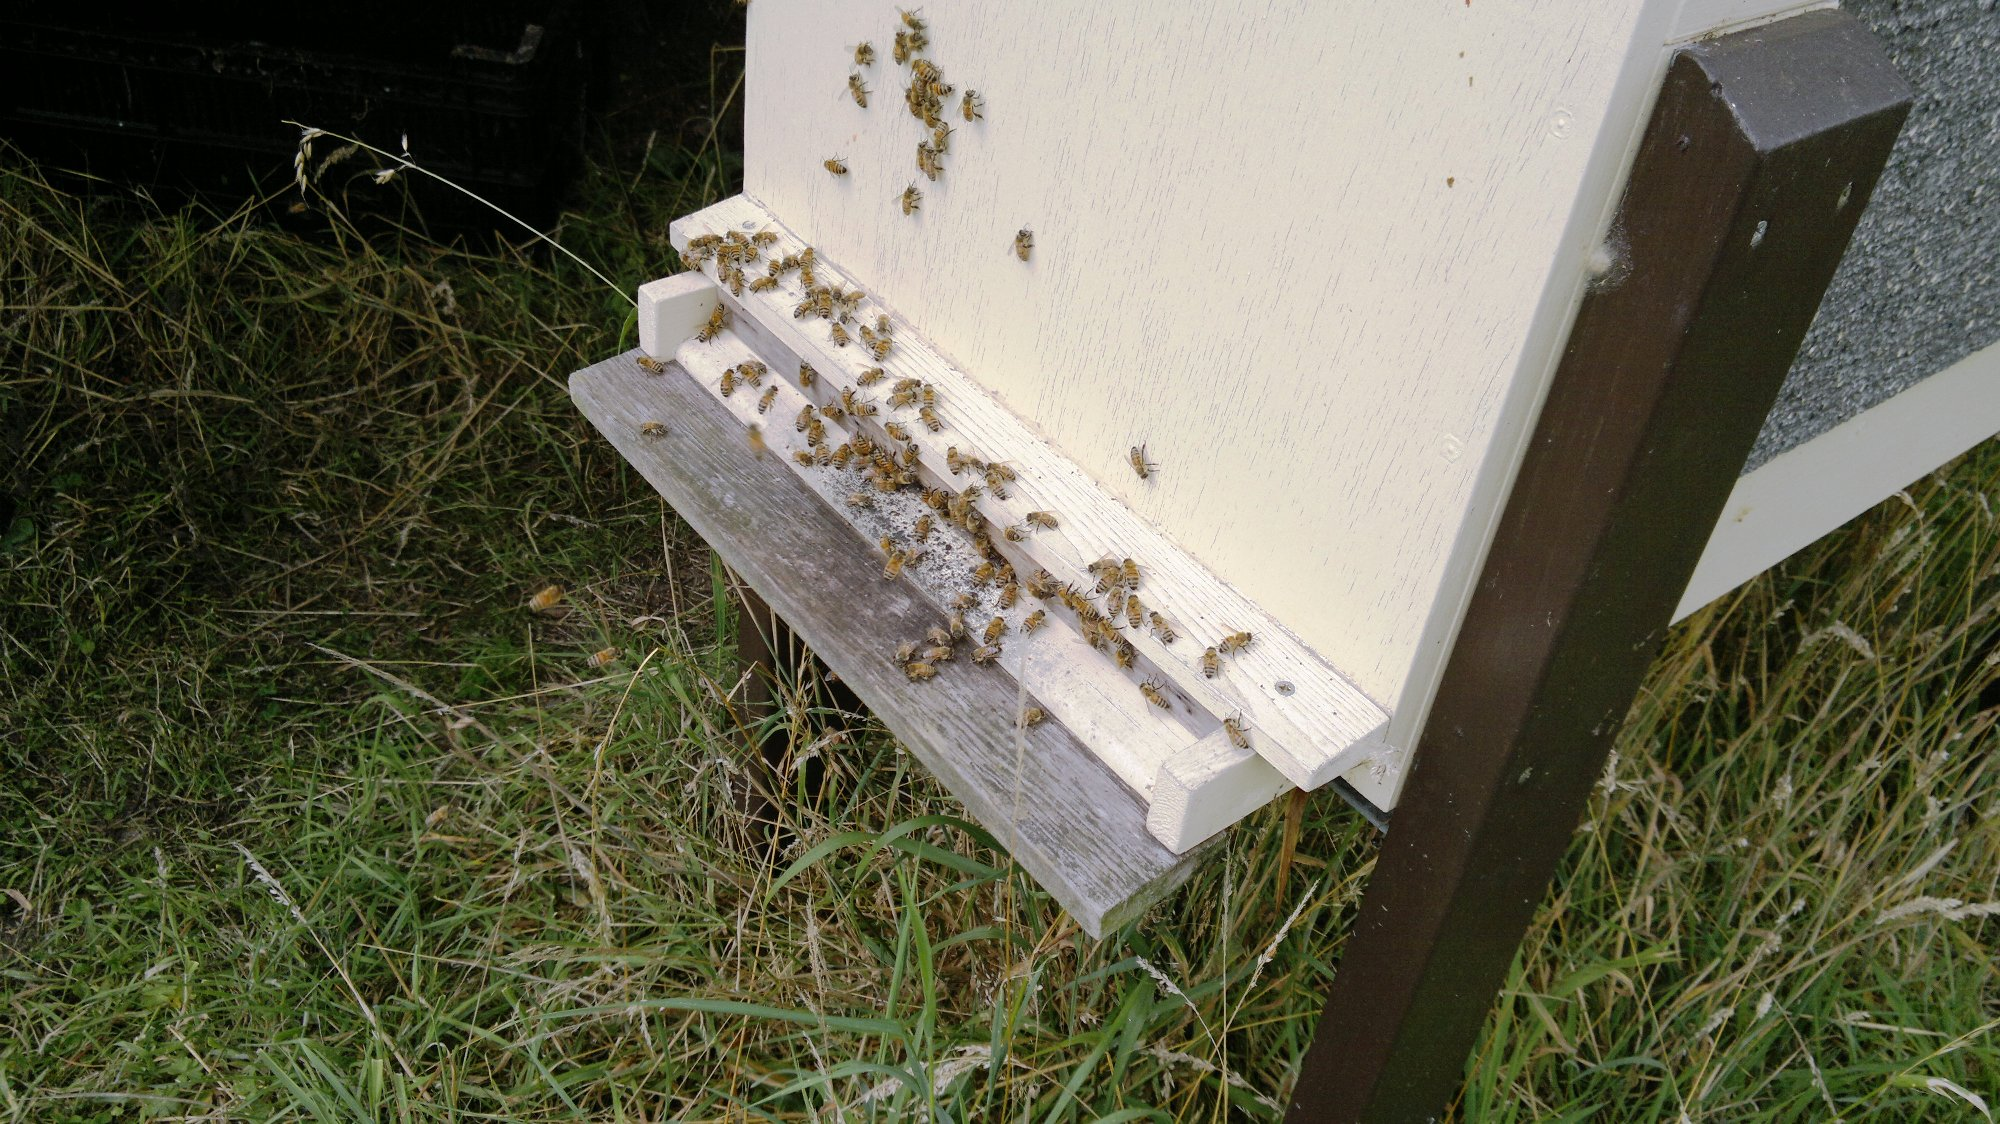 Busy bees bringing nectar into the long deep hive